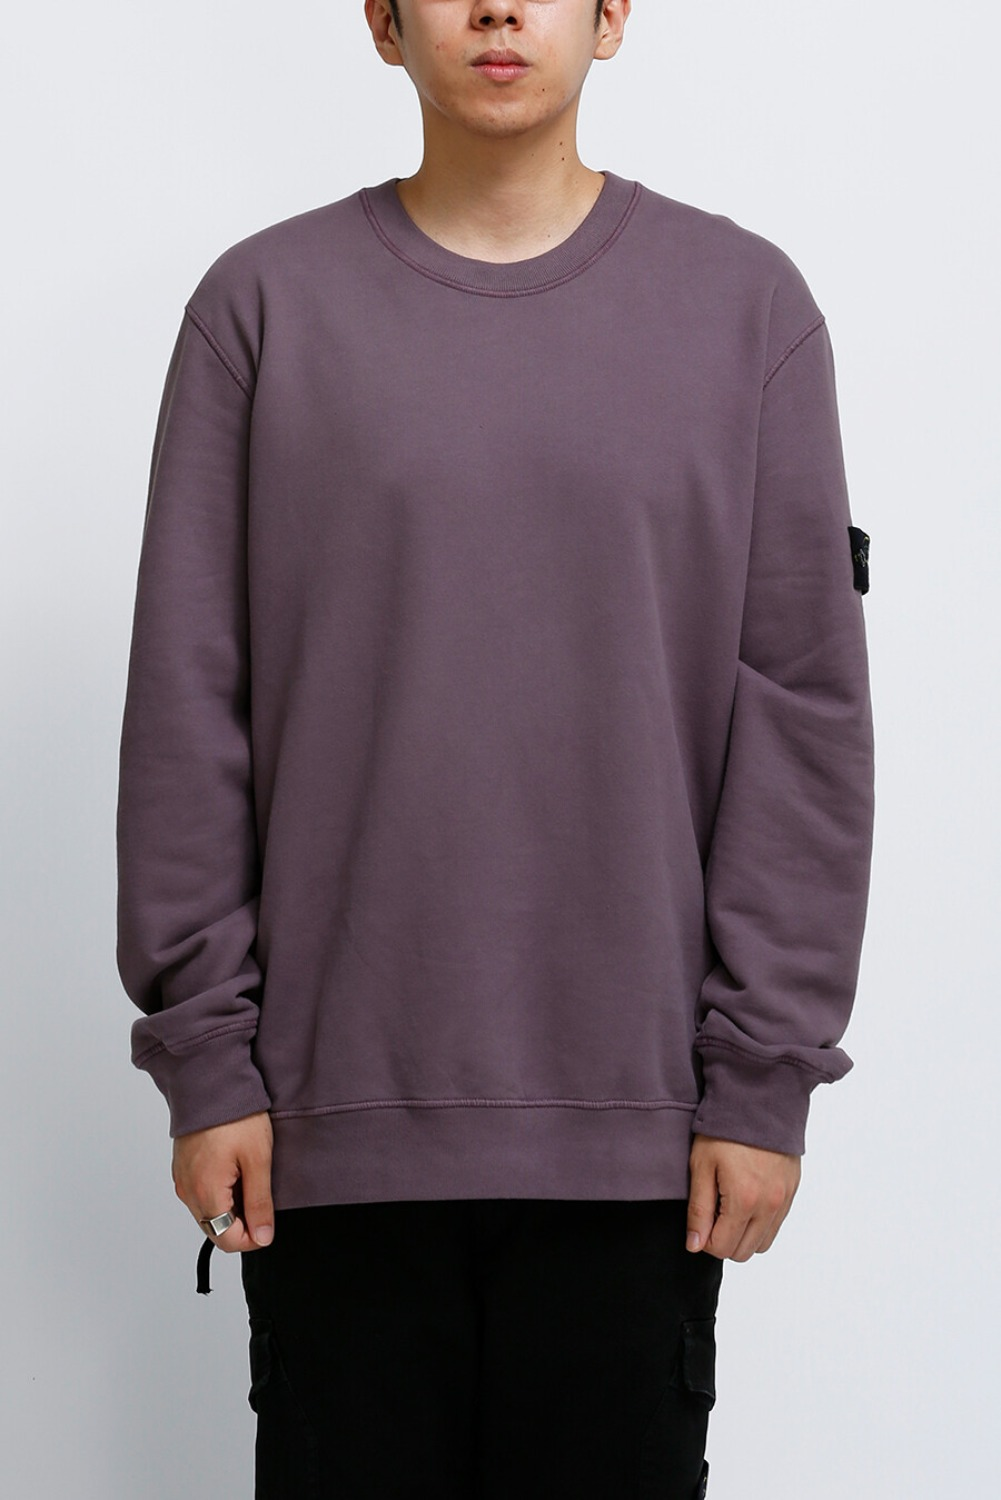 BRUSHED COTTON FLEECE GARMENT DYED SWEATSHIRT MAGENTA